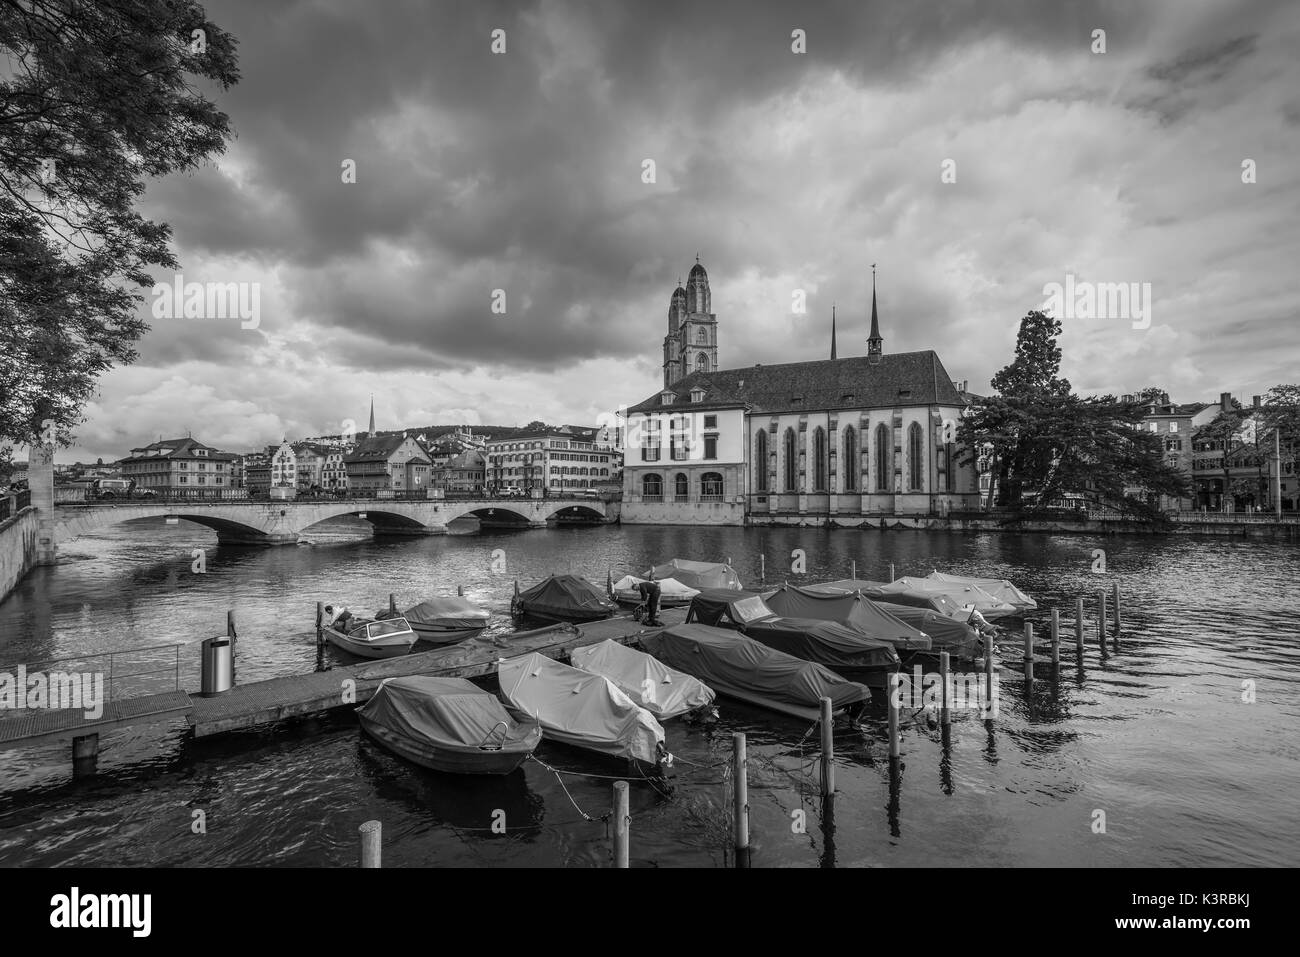 Zurich, Switzerland - May 24, 2016: Architecture of Zurich in overcast rainy weather, the largest city in Switzerland and the capital of the canton of - Stock Image